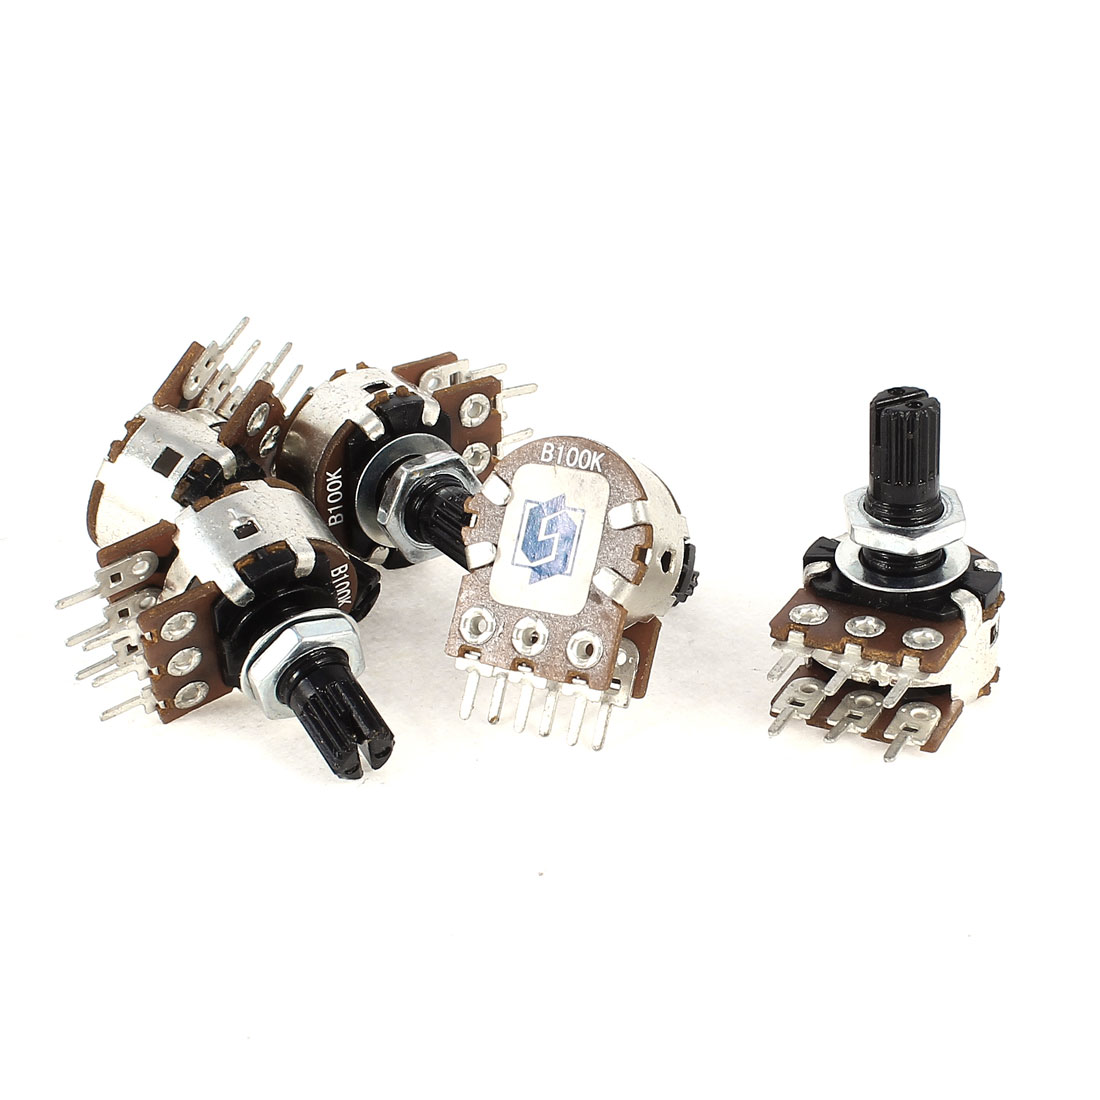 5 Pieces Type B 100K Ohm 6 Terminals Dual Linear Rotary Taper Potentiometers